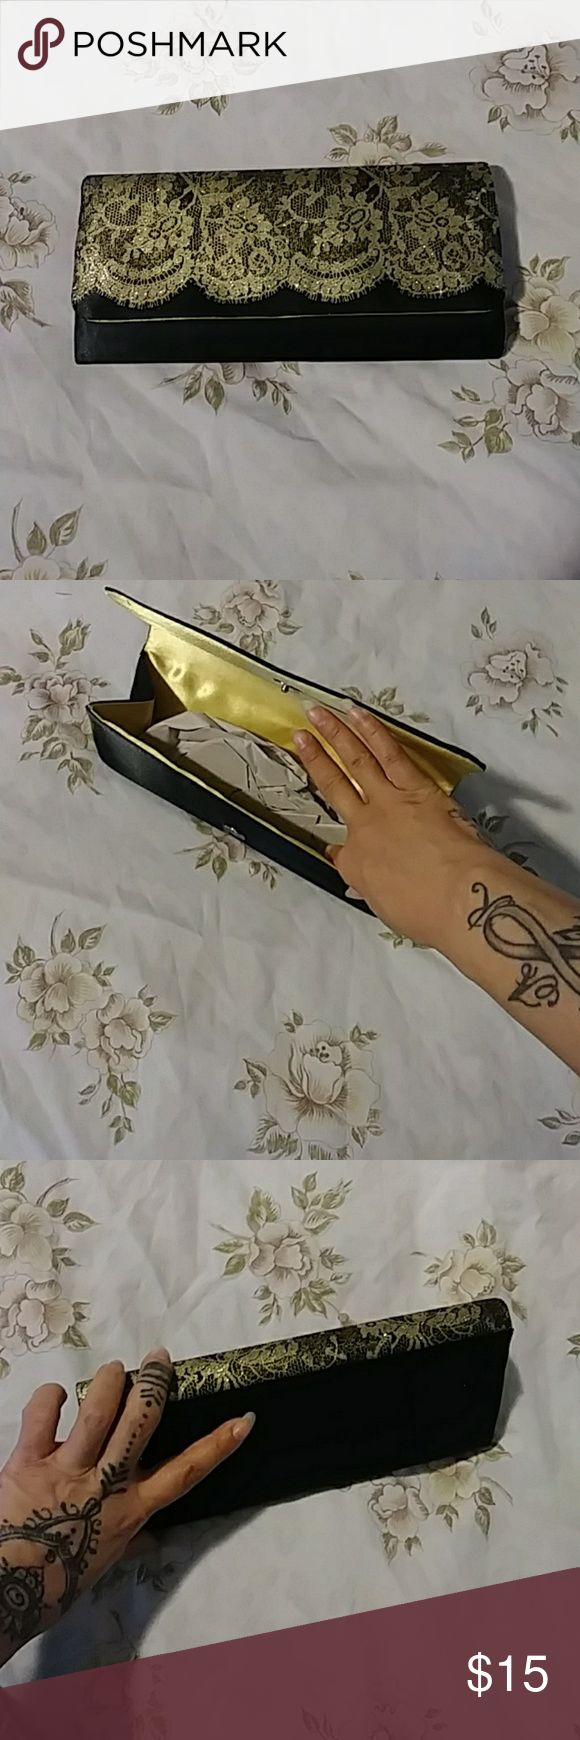 """Gold and black clutch Gold and black clutch.  No strap.  Brand new without tags.  The """"lace"""" Is gold glitter paint.  Absolutely gorgeous.  Black is satin material. Inside is gold satin material.  Smoke and pet free home. Bags Clutches & Wristlets"""